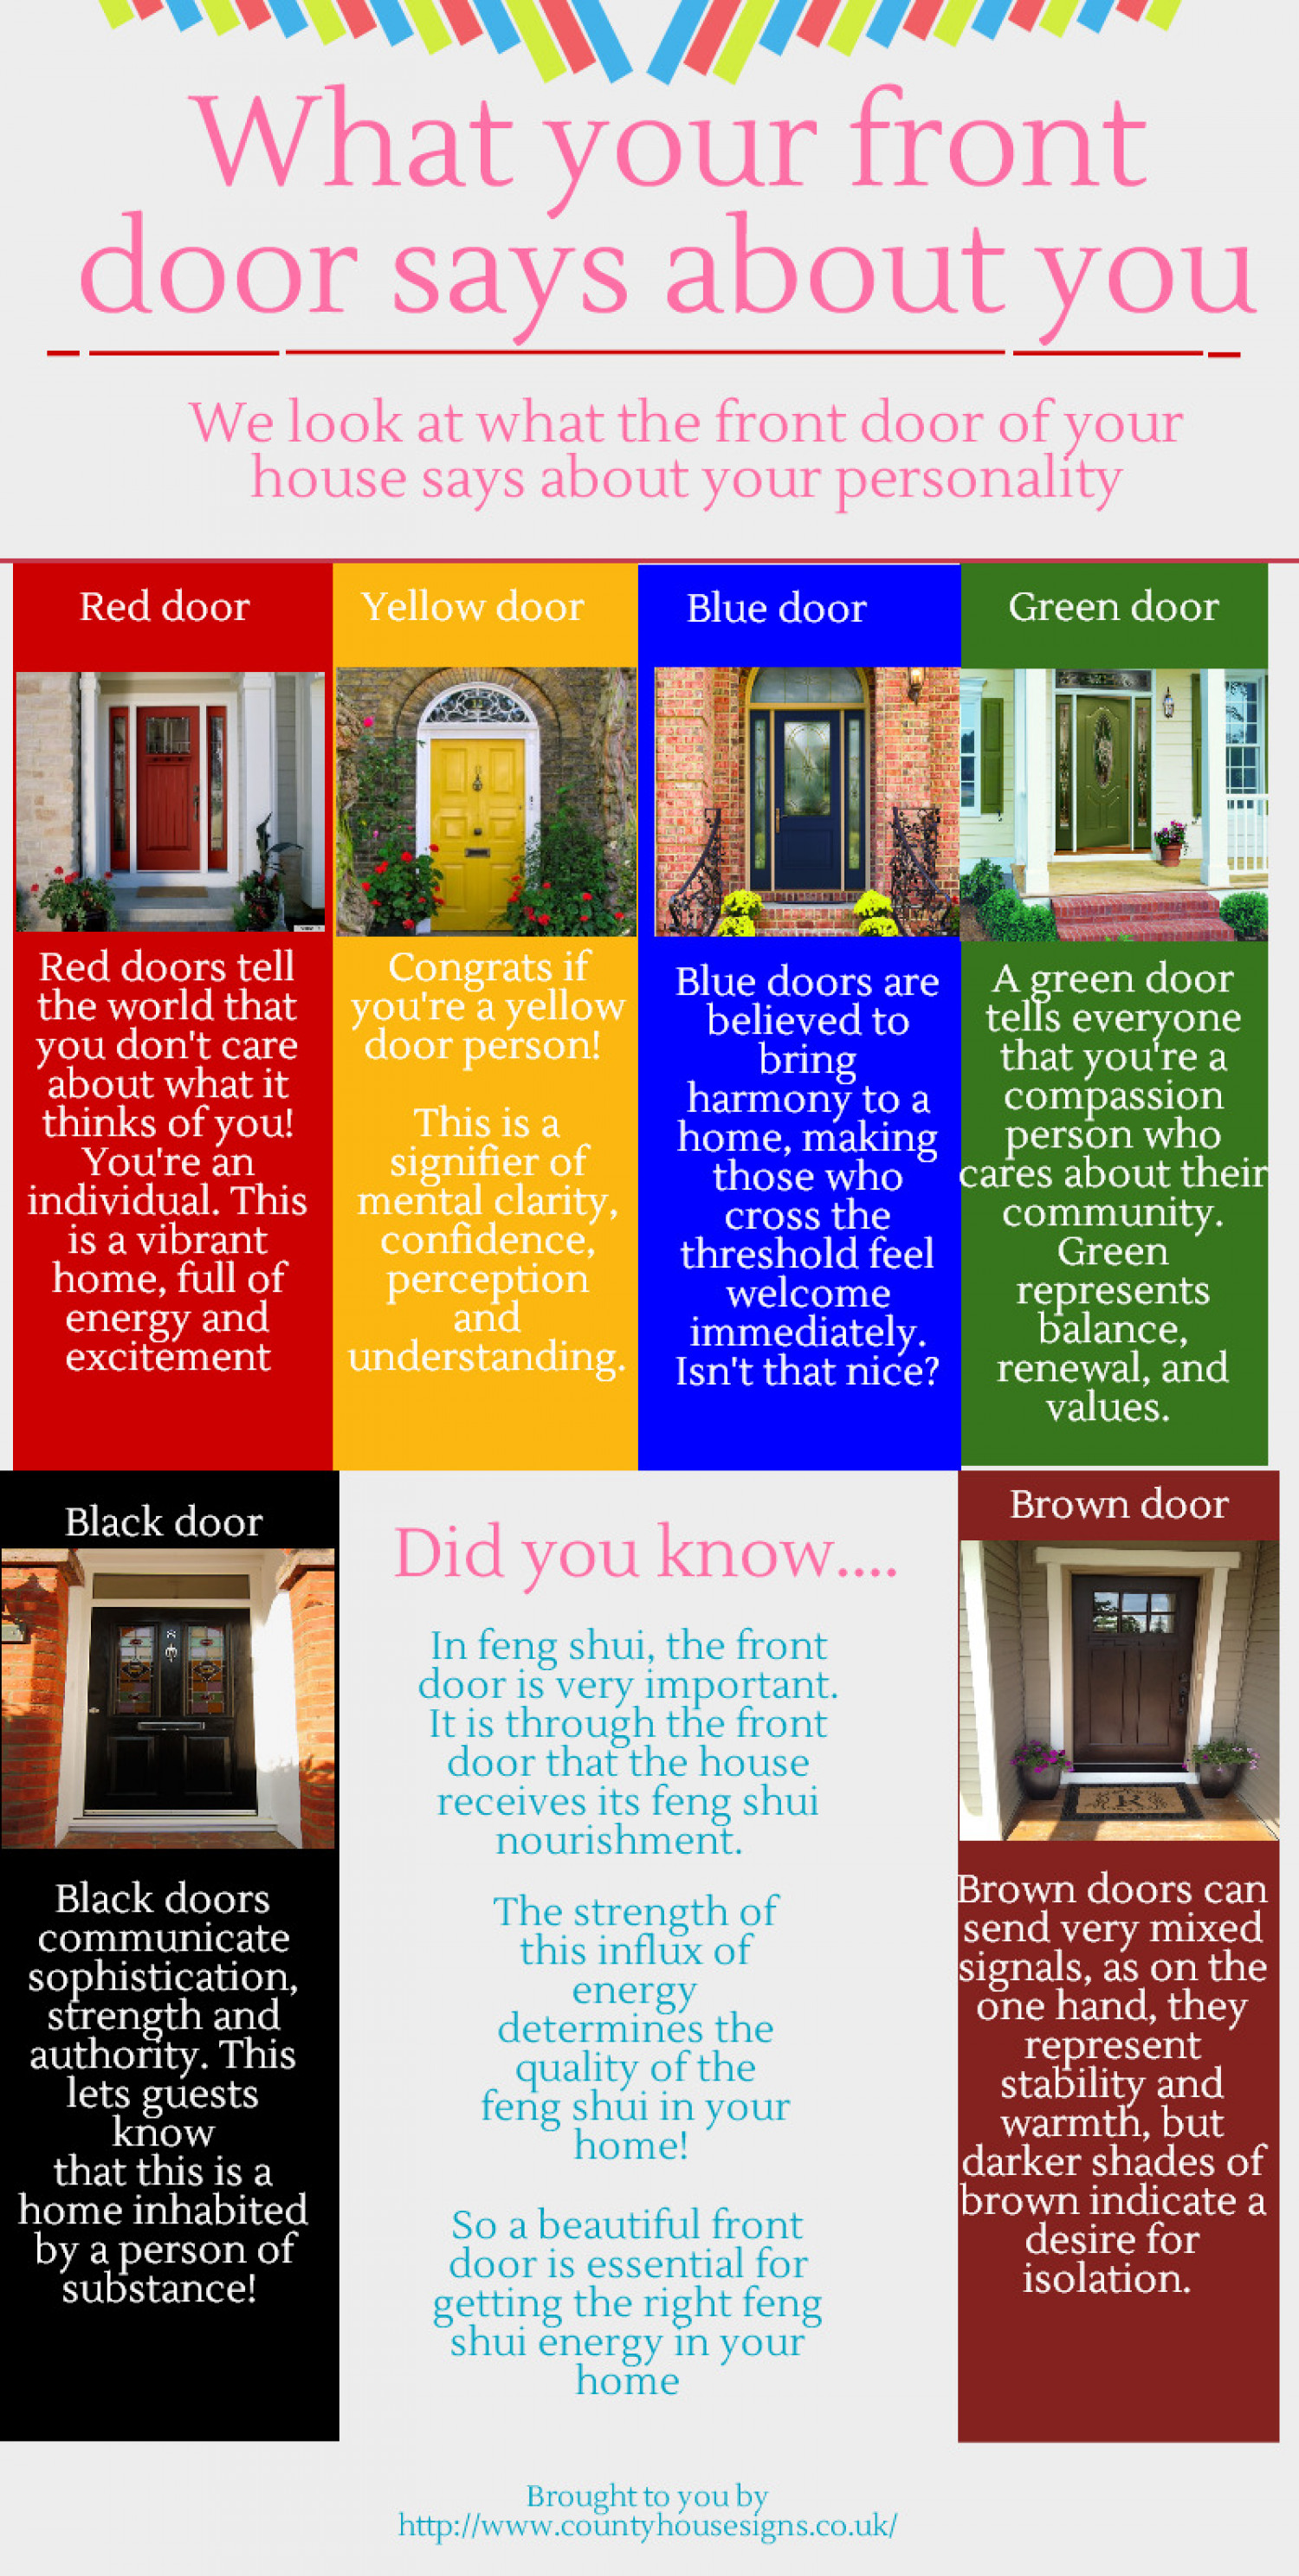 What Does Your Front Door Say About You?  Infographic